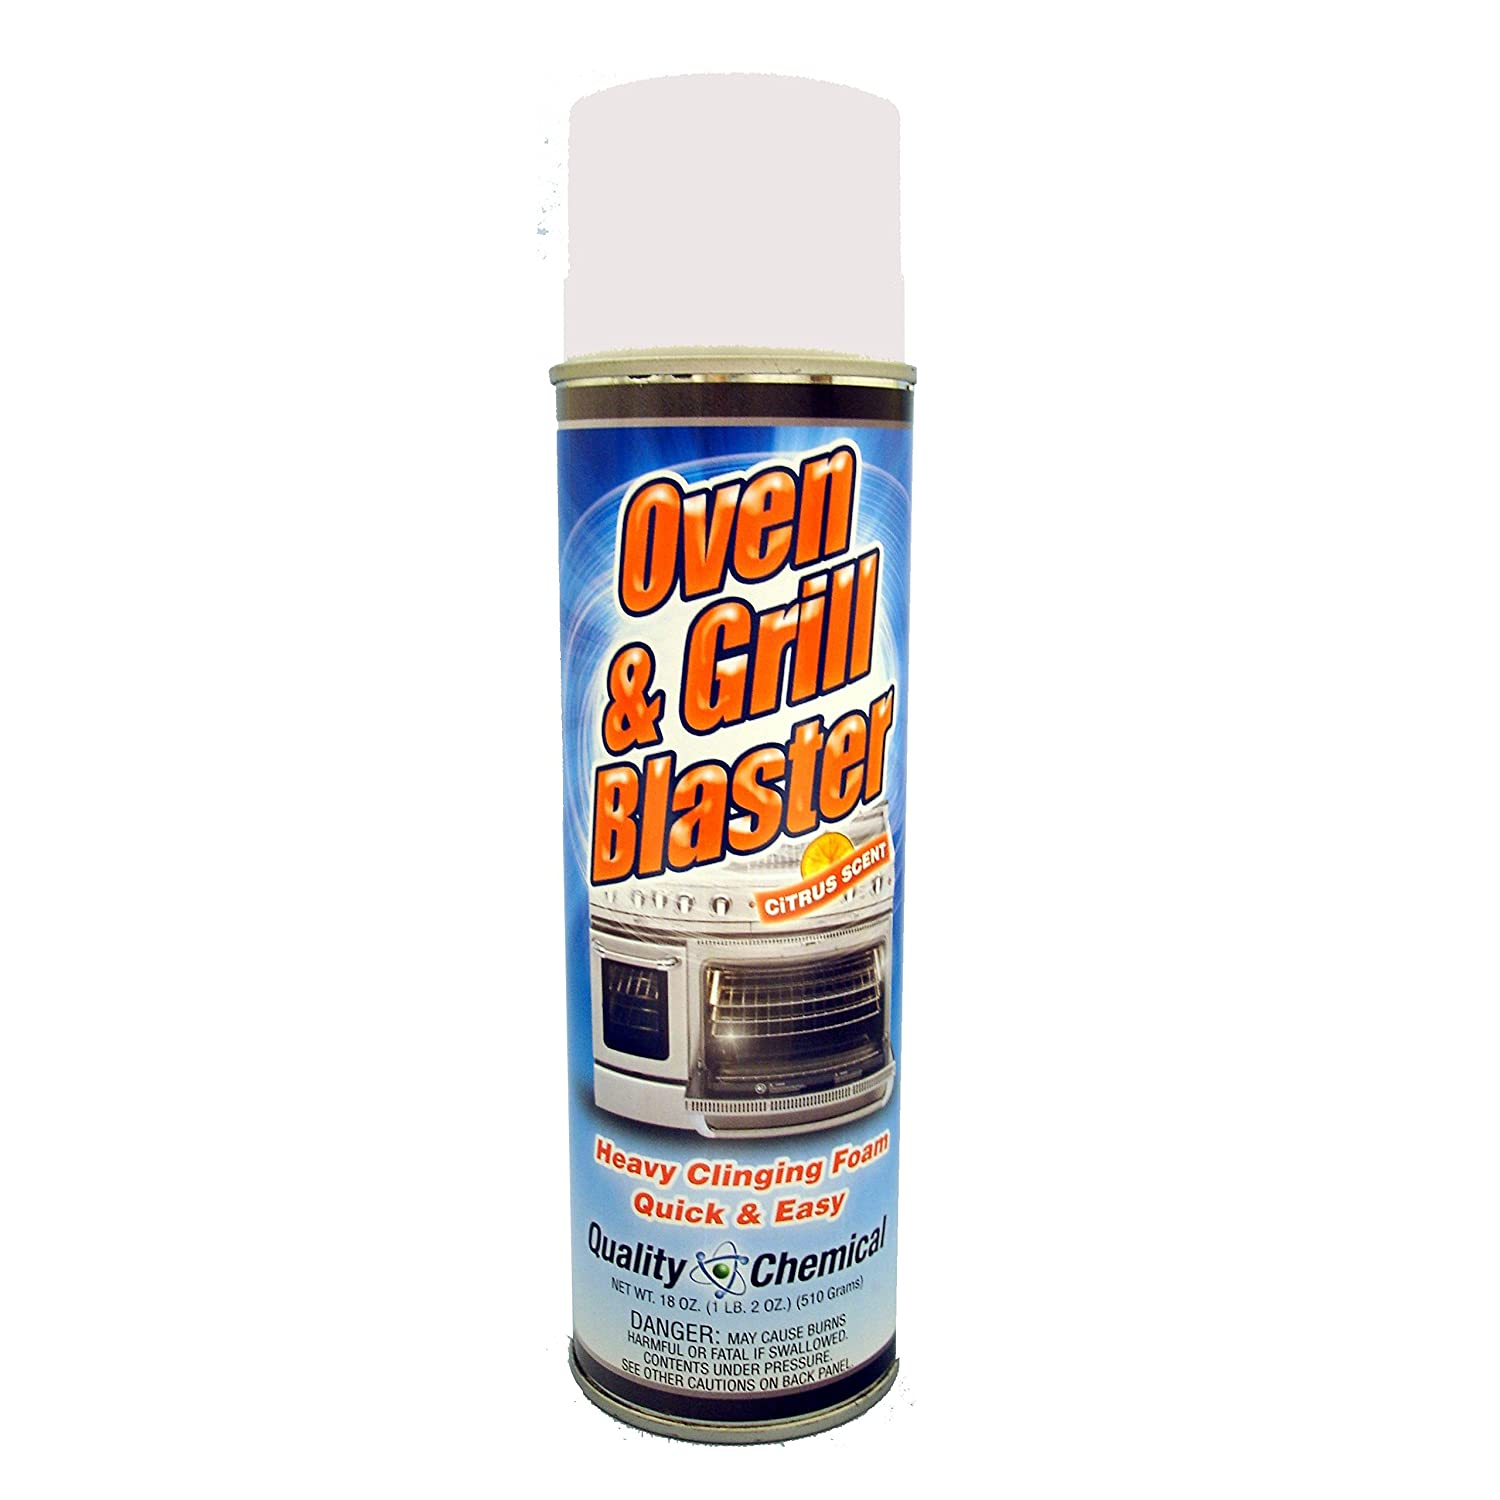 Oven and Grill Blaster Heavy-Duty Oven Cleaner, Grease and Carbon Remover - 12 cans